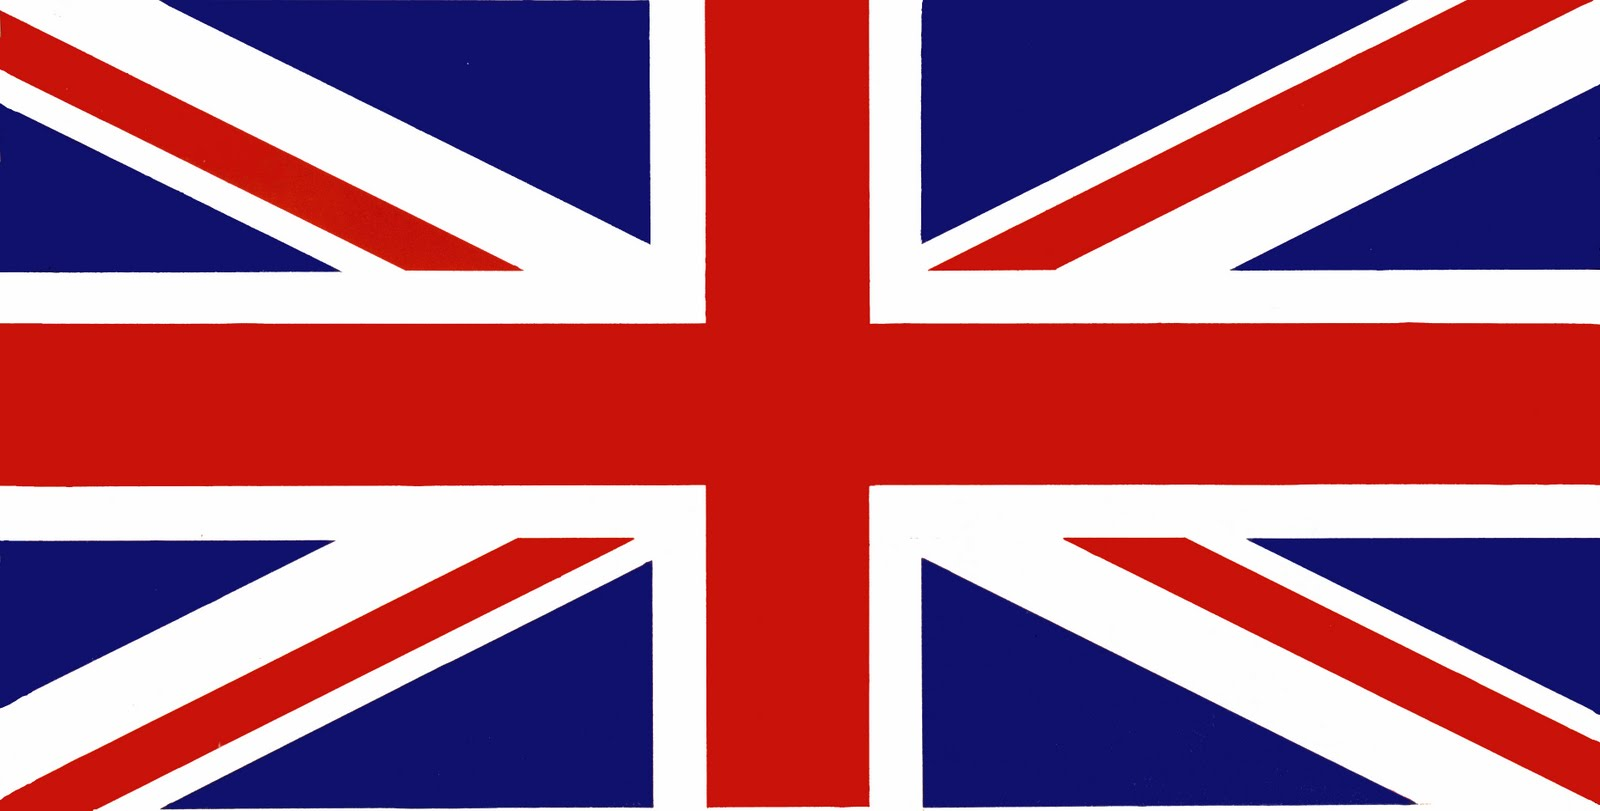 Save - United Kingdom Clipart